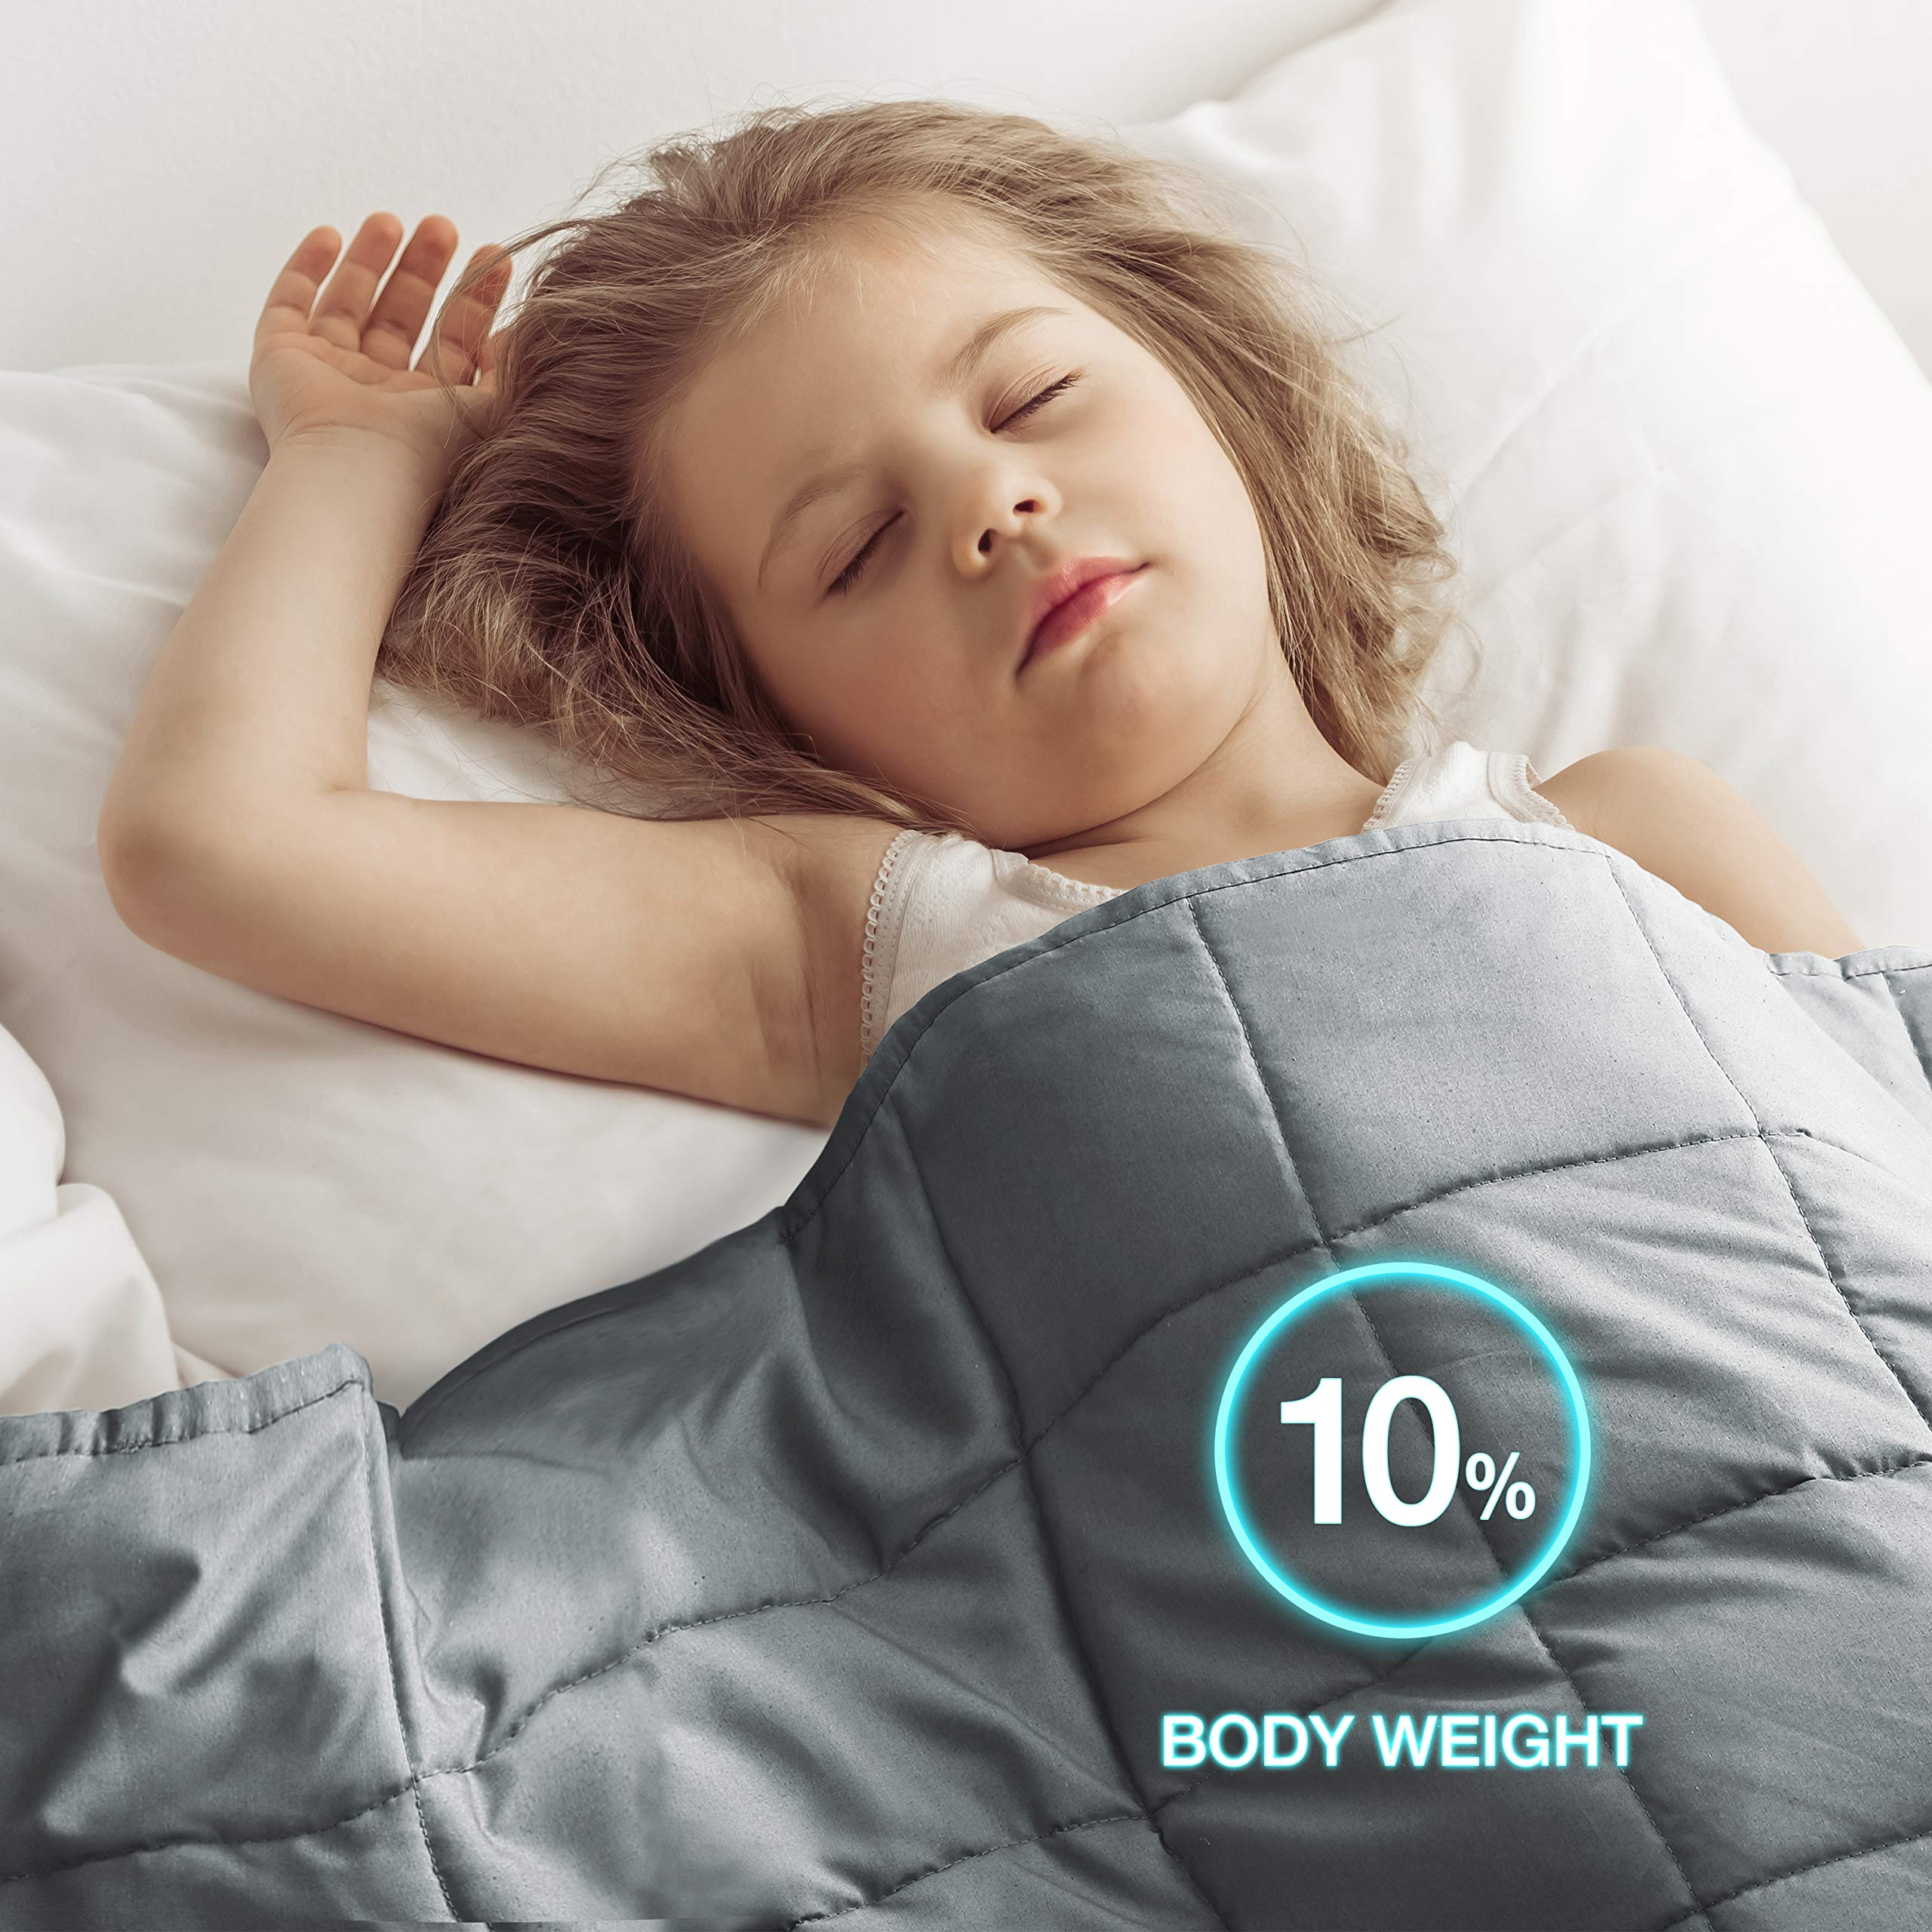 EXQ Home Weighted Blanket 7 lbs for Kids Heavy Blanket Grey Super Soft Thick Blanket with Premium Glass Beads, Organic Cotton